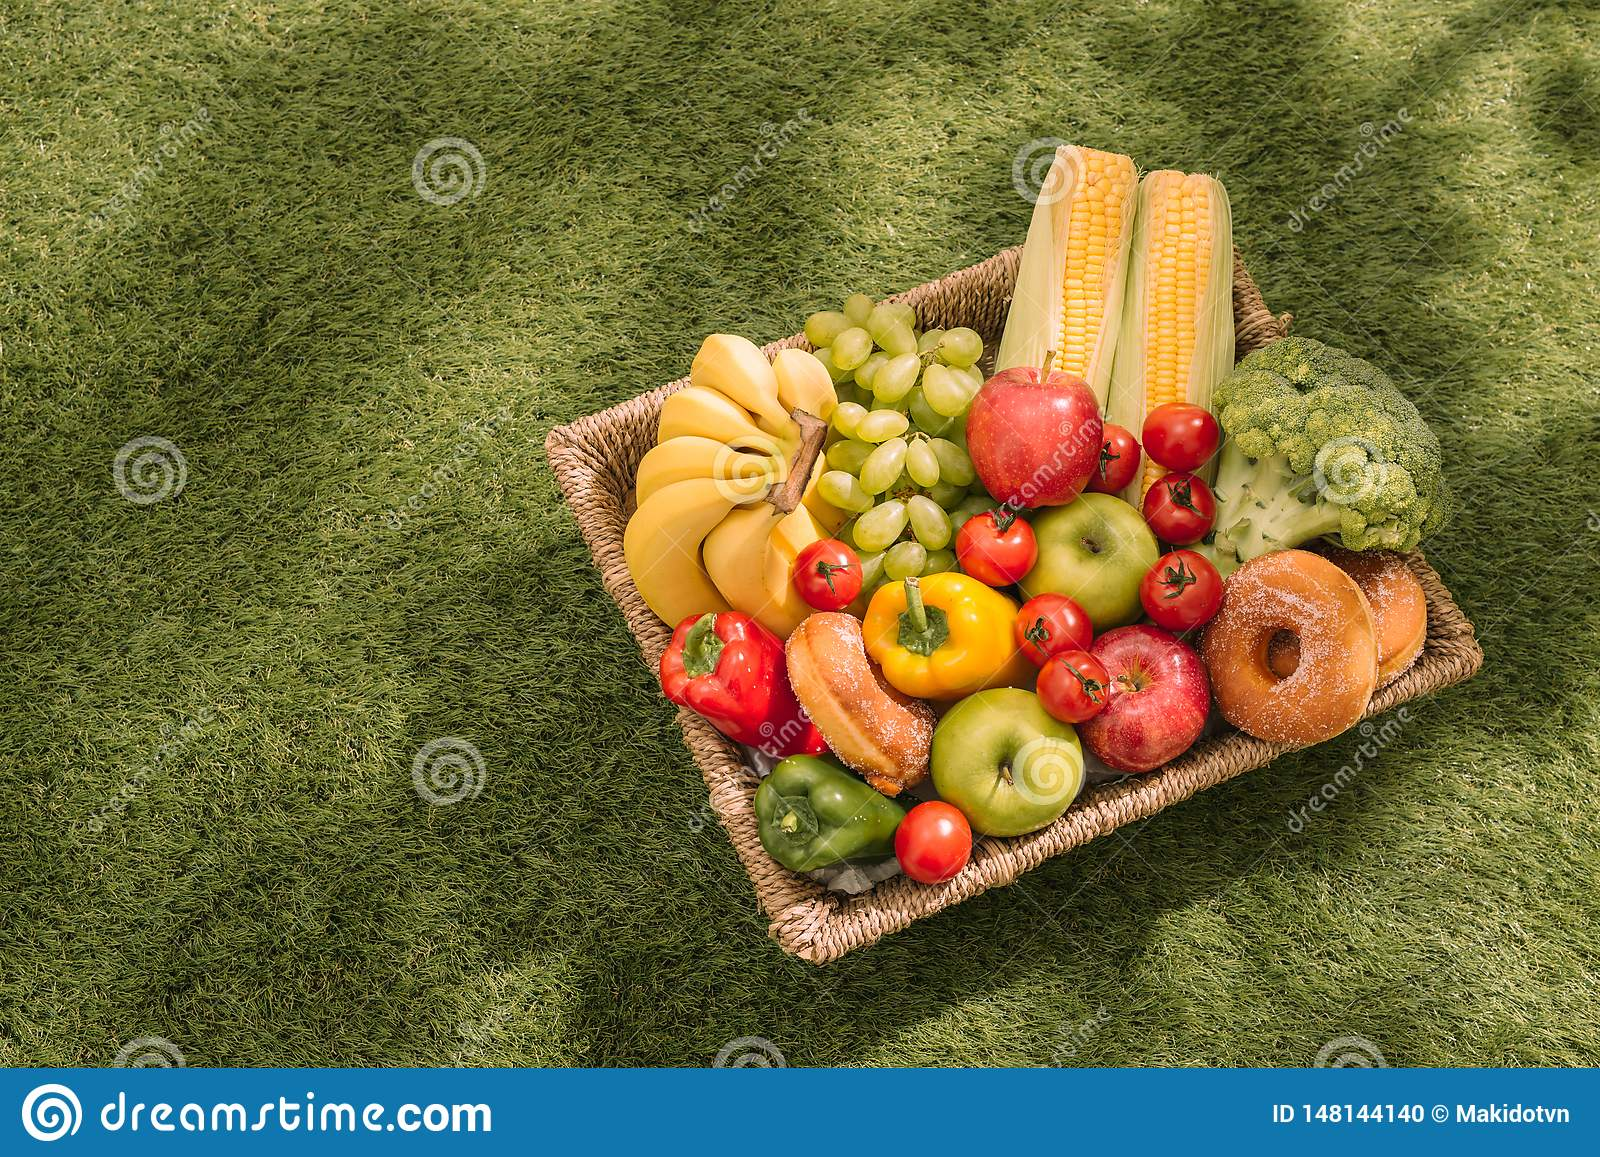 Picnic on the grass. Red checked tablecloth, basket, healthy food and fruit, orange juice. Top view. Summer Time Rest. Flat lay